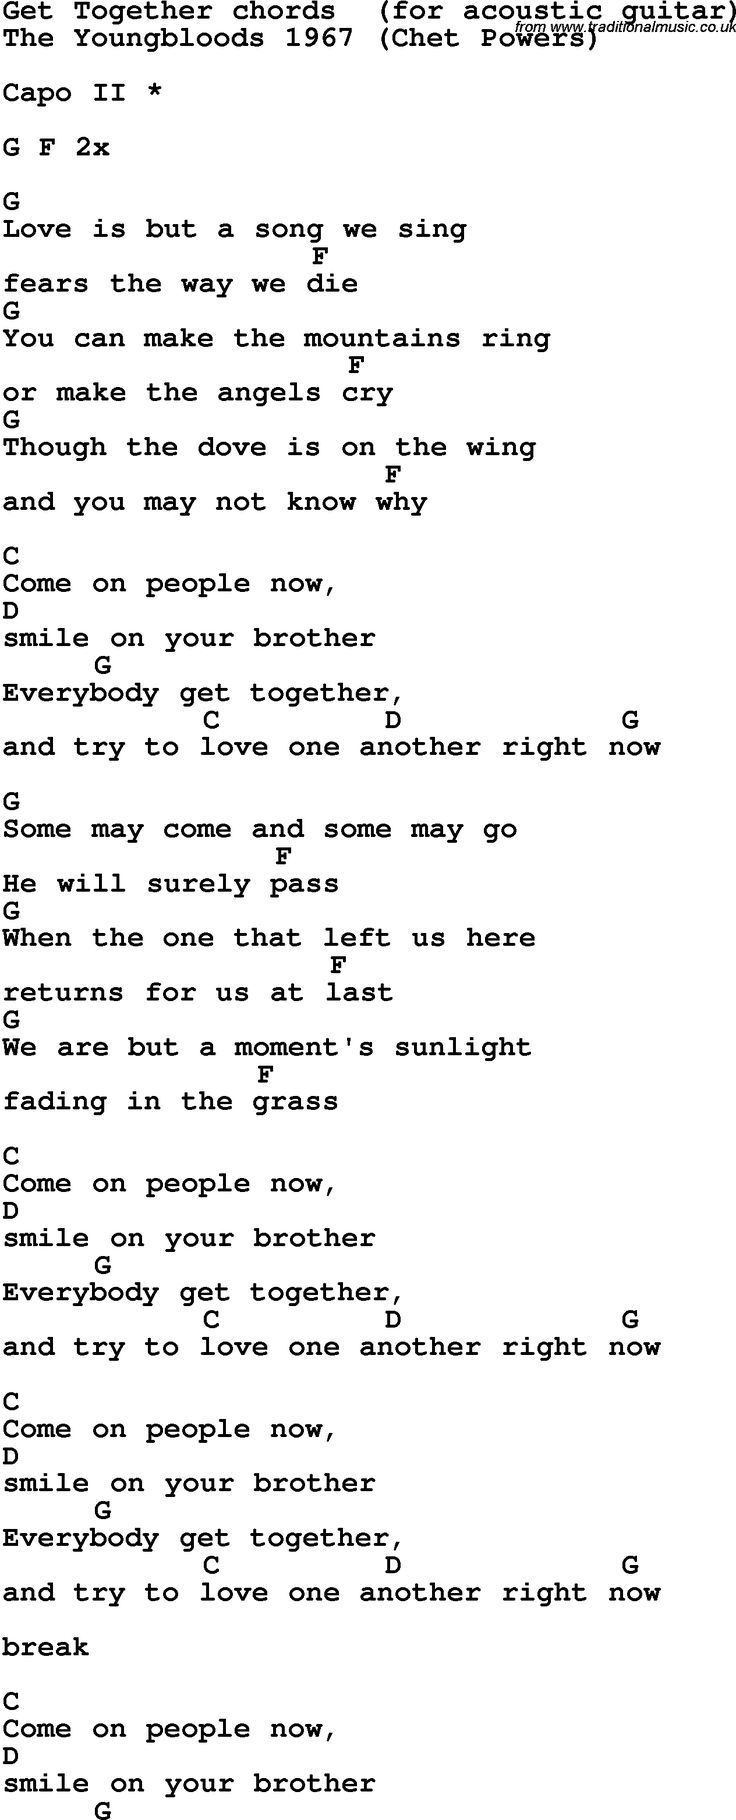 Song Lyrics With Guitar Chords For Get Together Guitar Playing